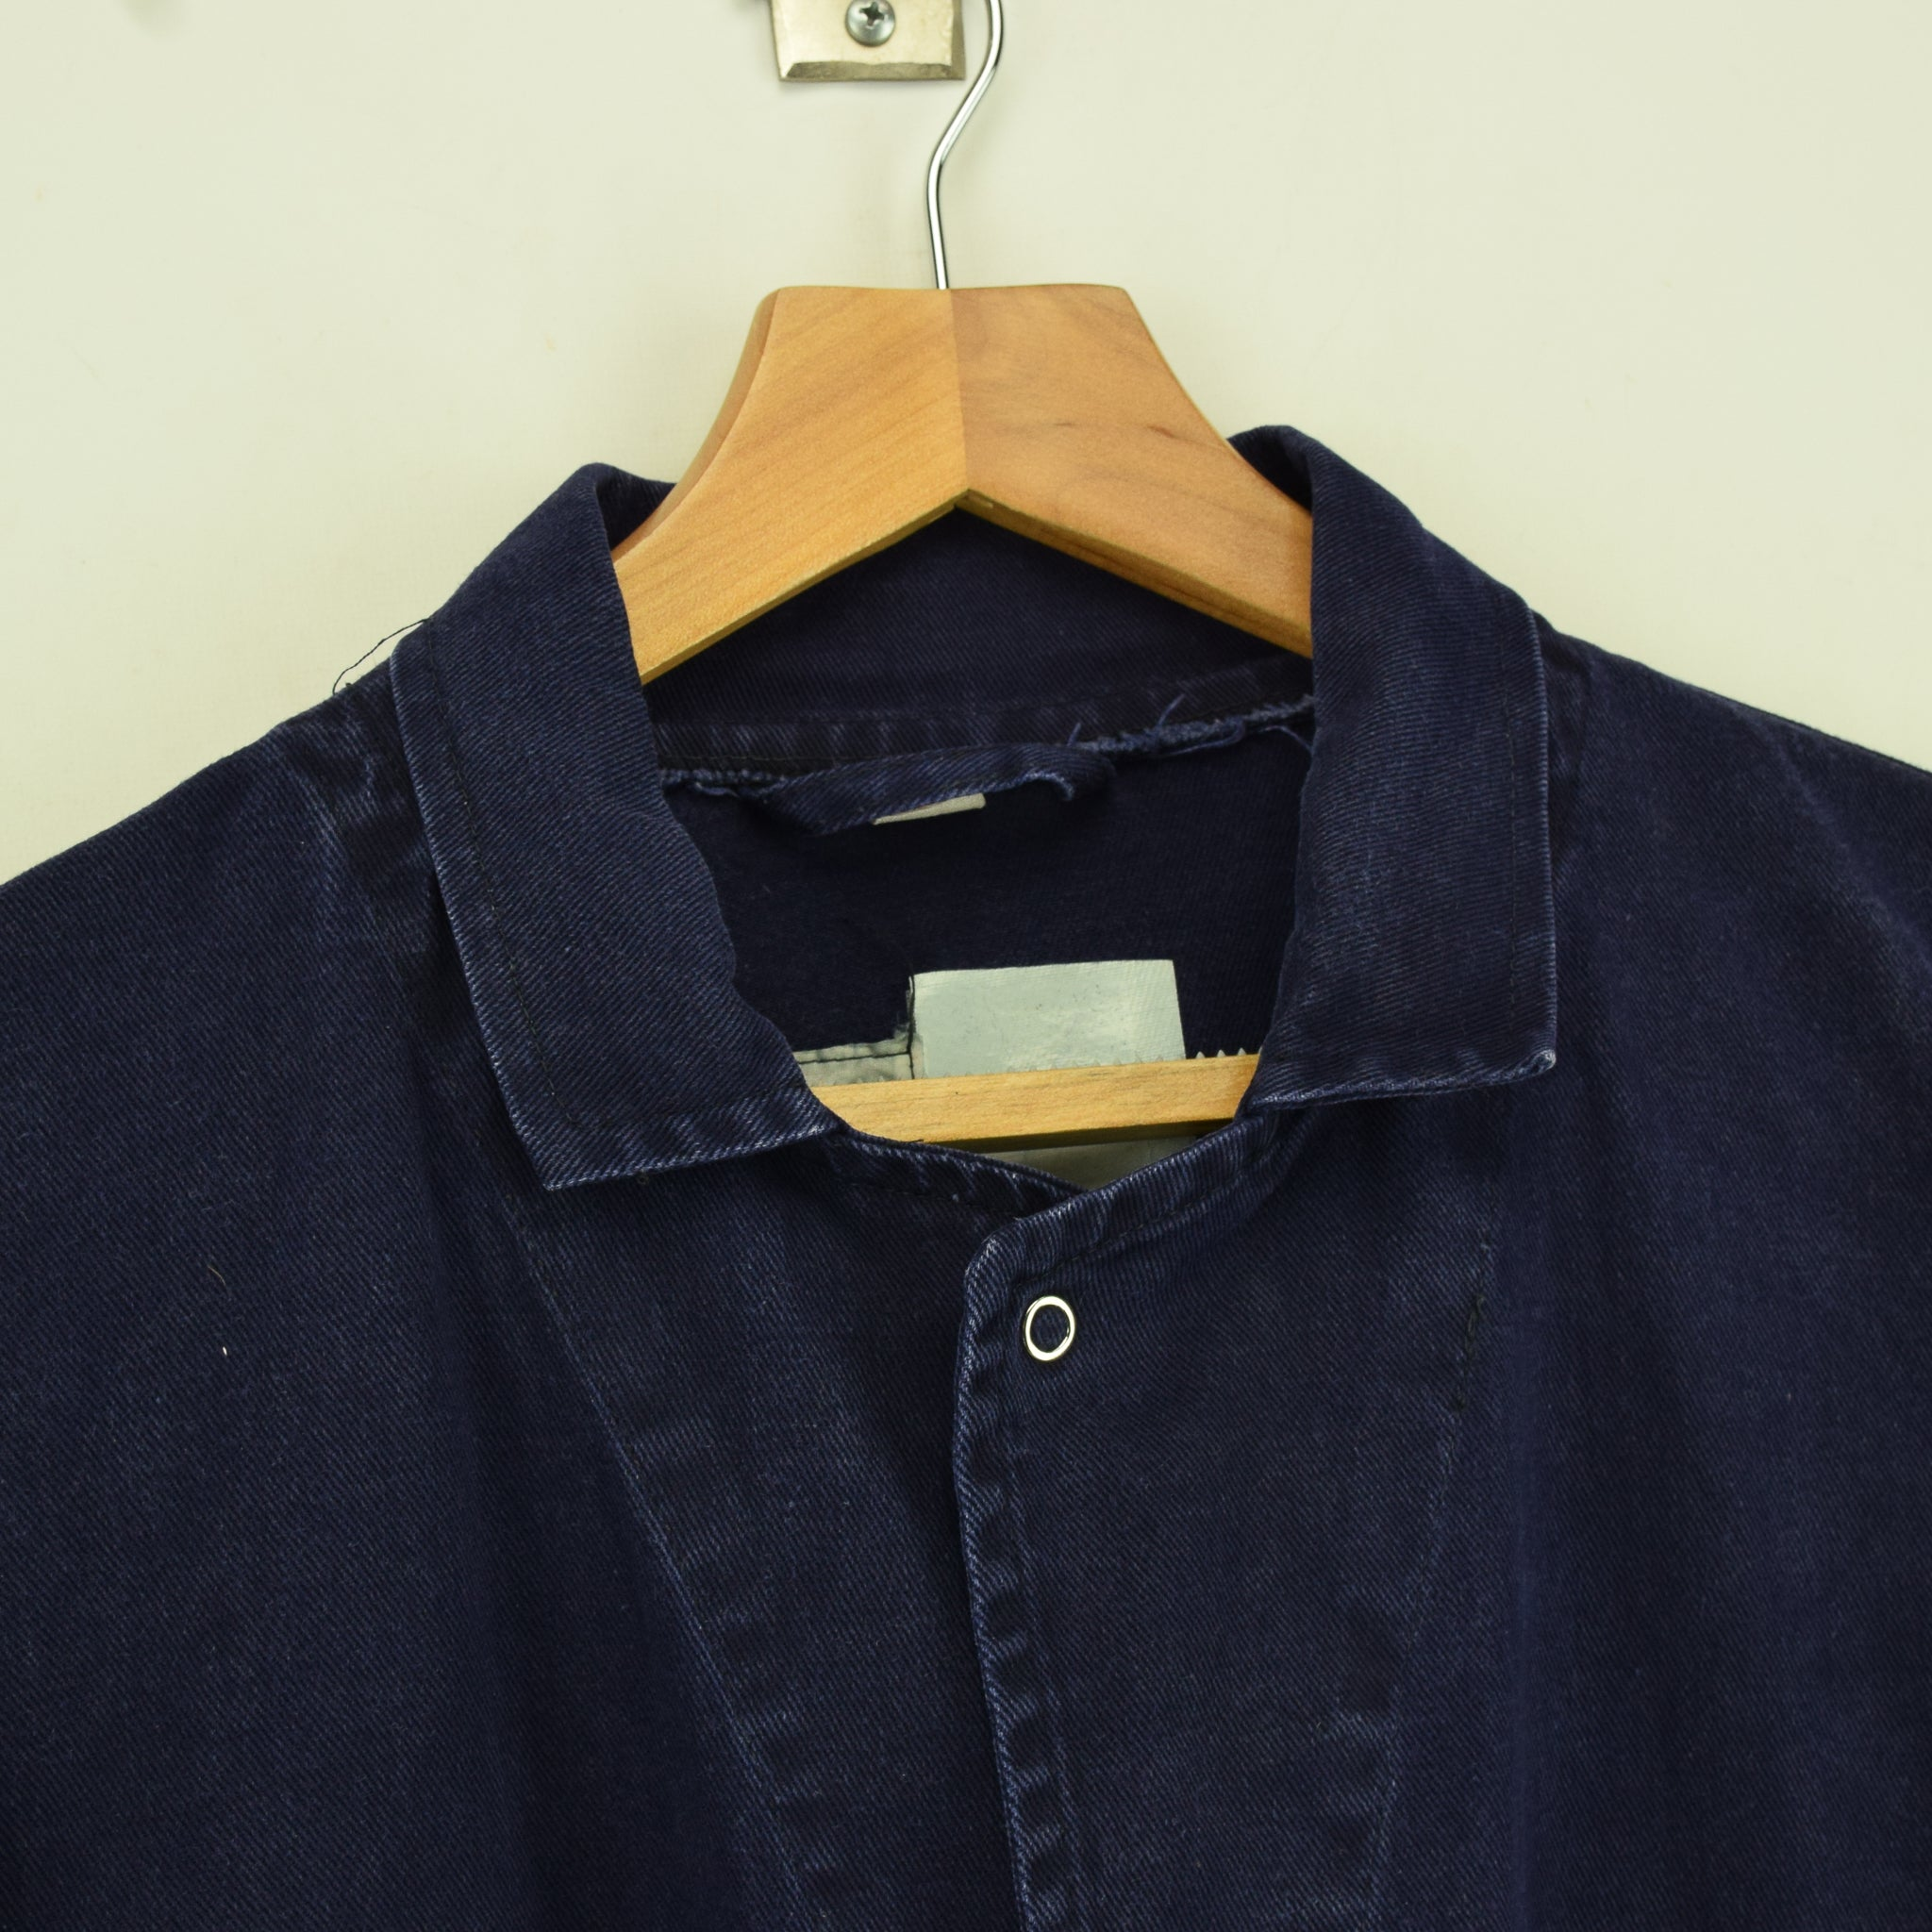 Vintage Distressed Blue French Style Worker Sanforized Cotton Chore Jacket XL collar